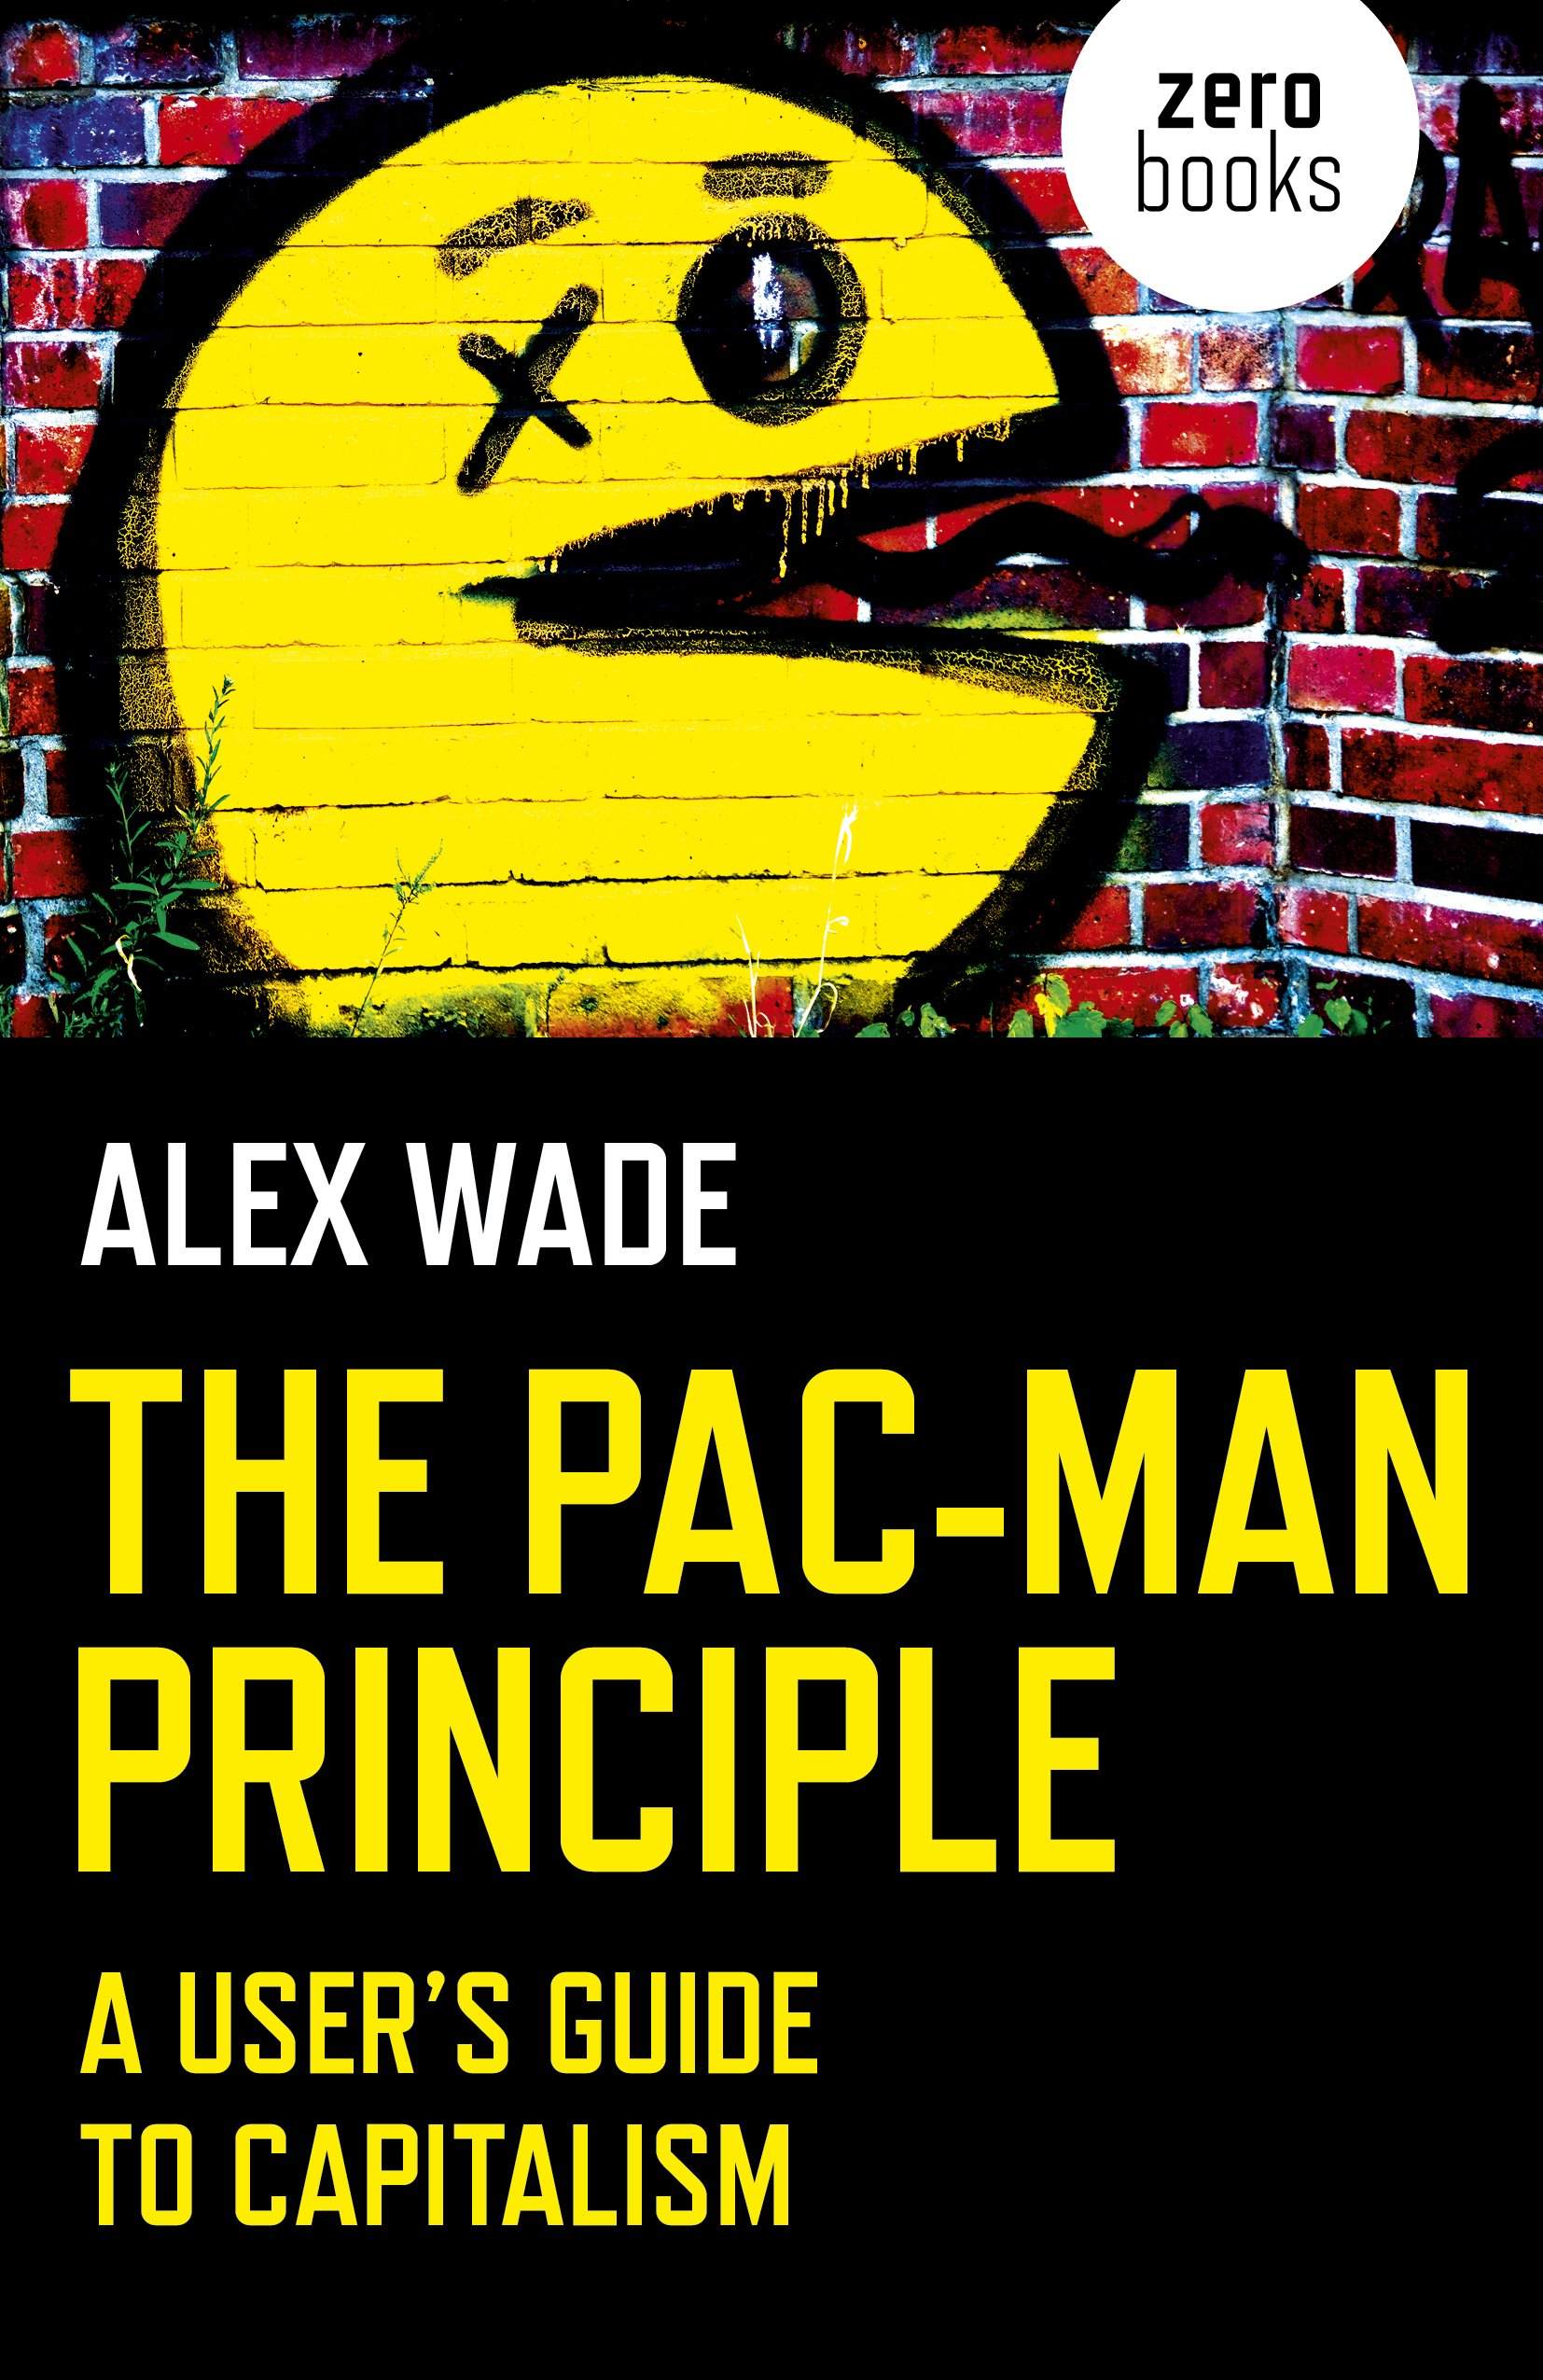 The Pac-Man Principle: A User's Guide To Capitalism: Alex Wade ... on snowboard golf cart, happy holidays golf cart, bowling golf cart, halo golf cart, mayweather golf cart, superfly golf cart, pirates golf cart, frogger golf cart, basketball golf cart, fishing golf cart, zoo keeper golf cart, space golf cart, shooting golf cart, tanks golf cart,